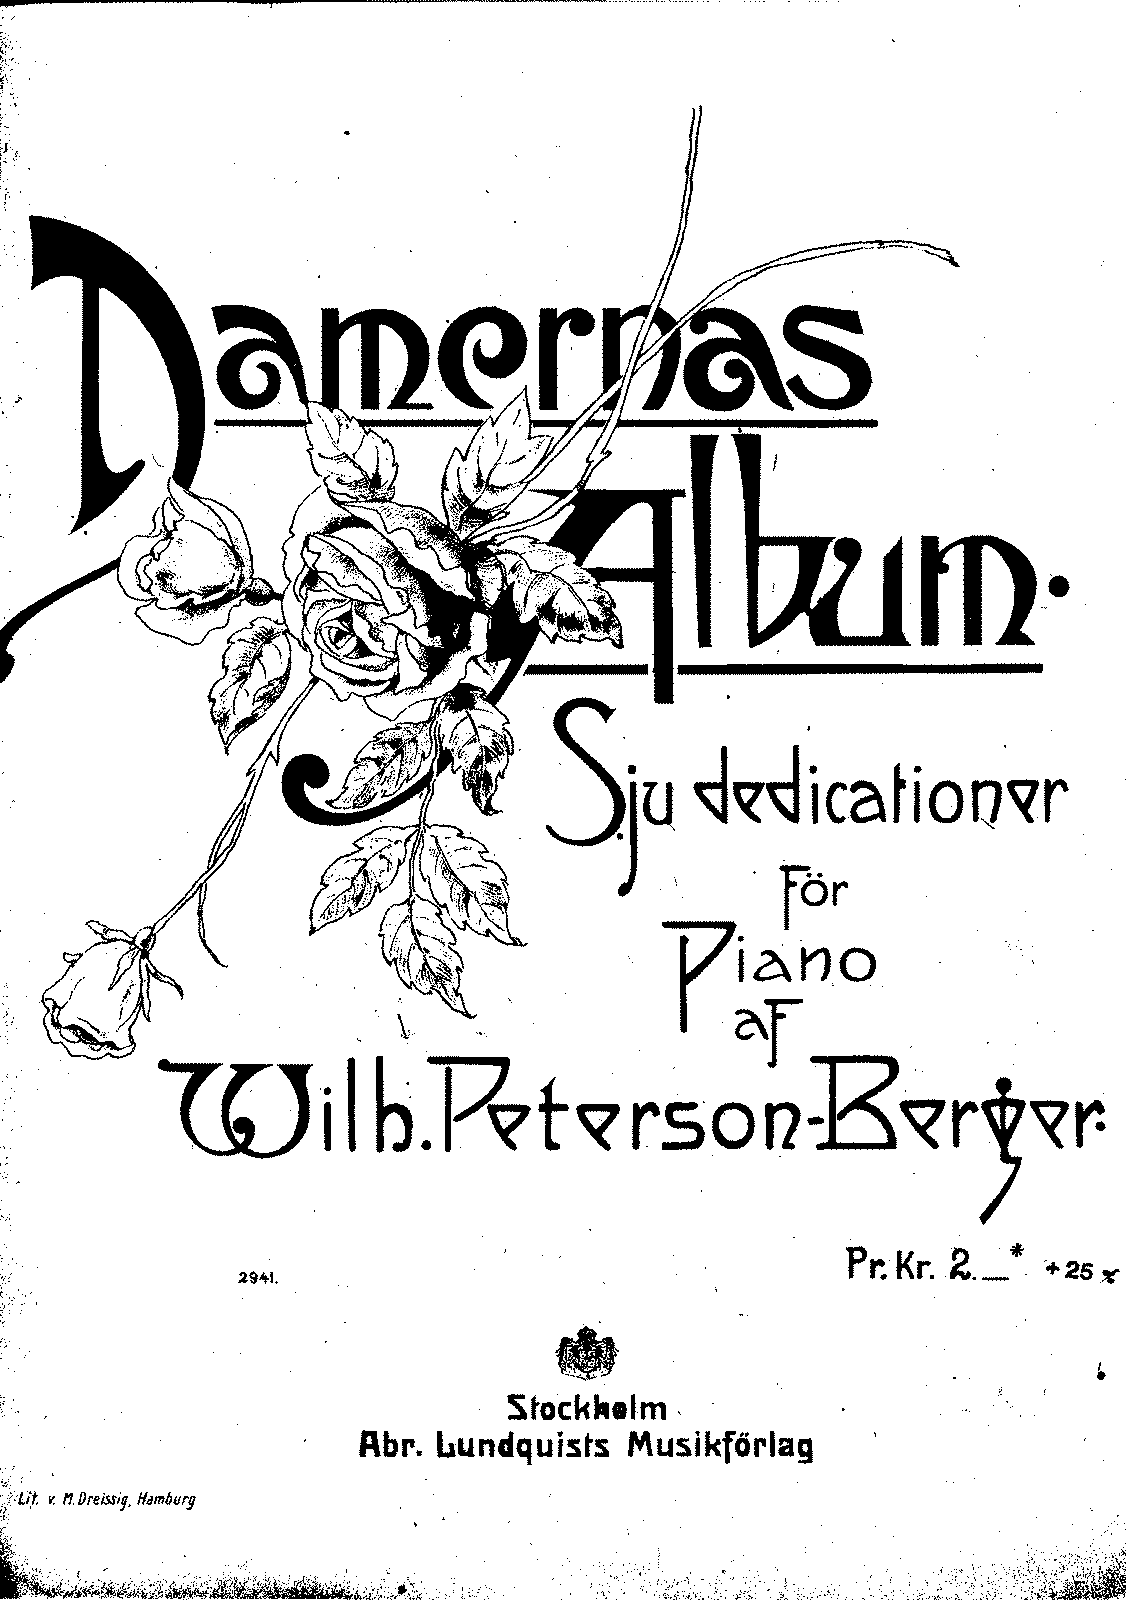 PMLP448838-Peterson-Berger W. - Damernas Album.pdf